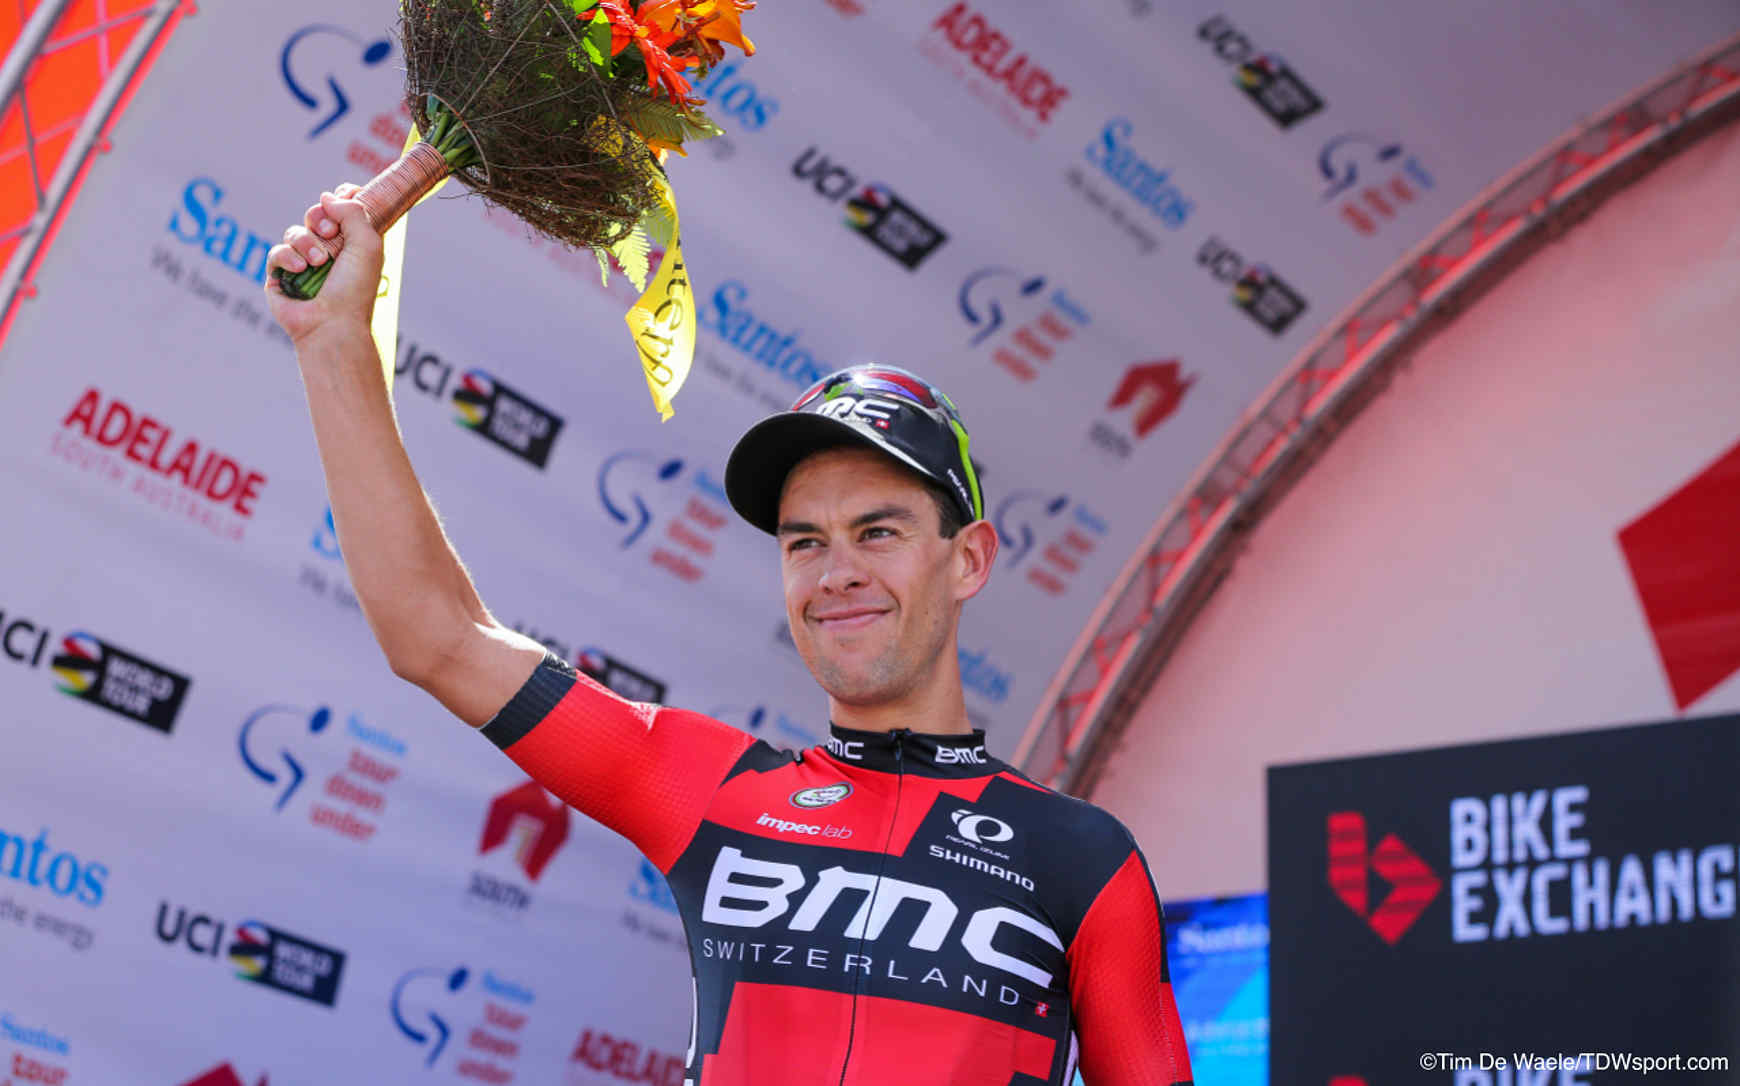 Richie porte heureux de sa premi re partie de saison for Richie porte and bmc